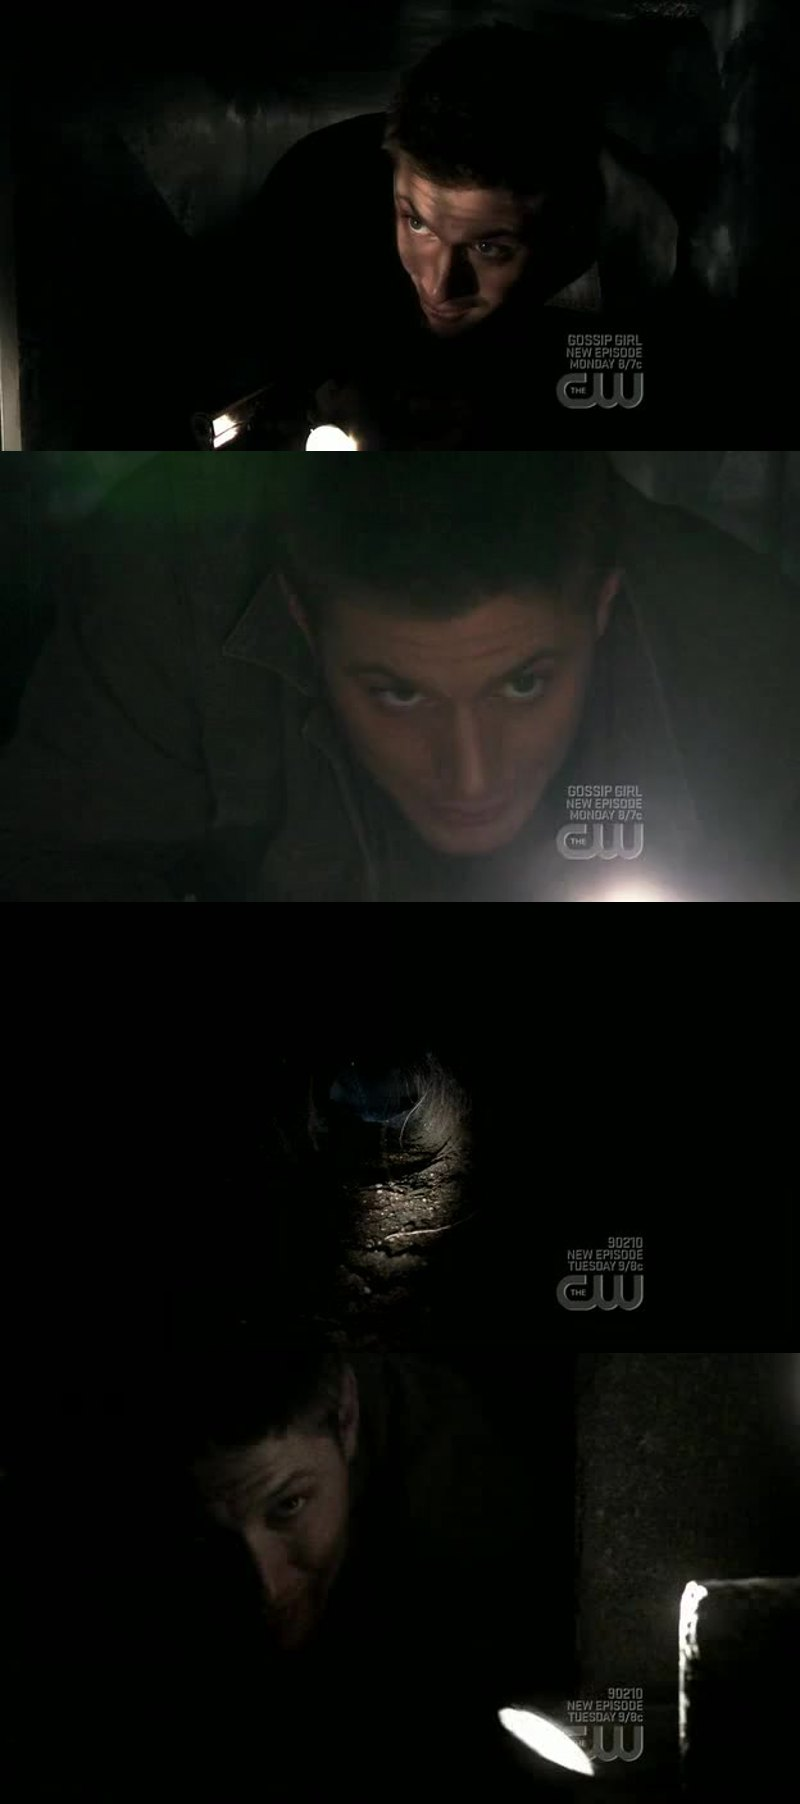 Haha... It's good Dean isn't claustrophobic.  \;^)